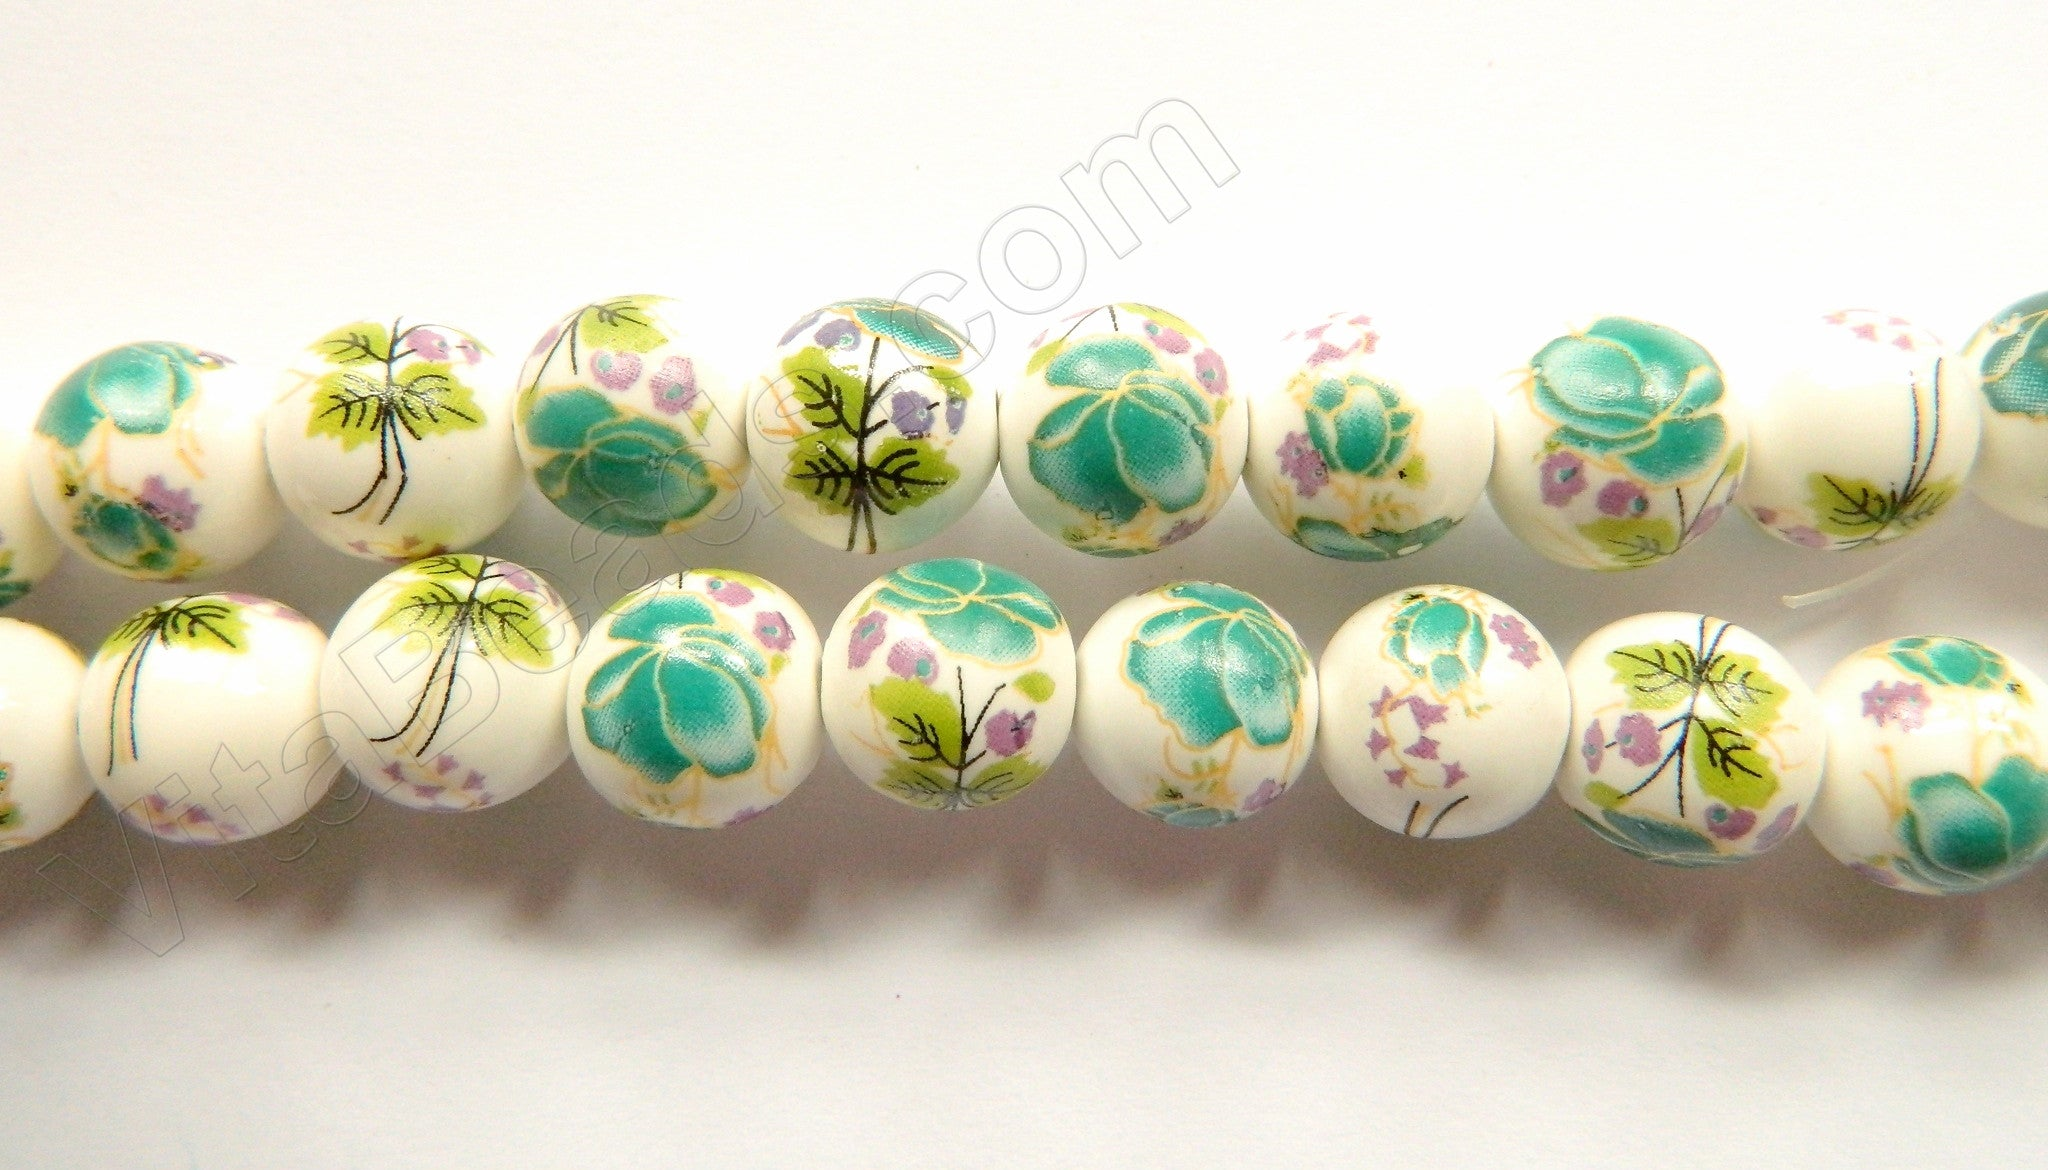 Porcelain Beads - White w/ Green Flora Beads  - 12 mm Smooth Round